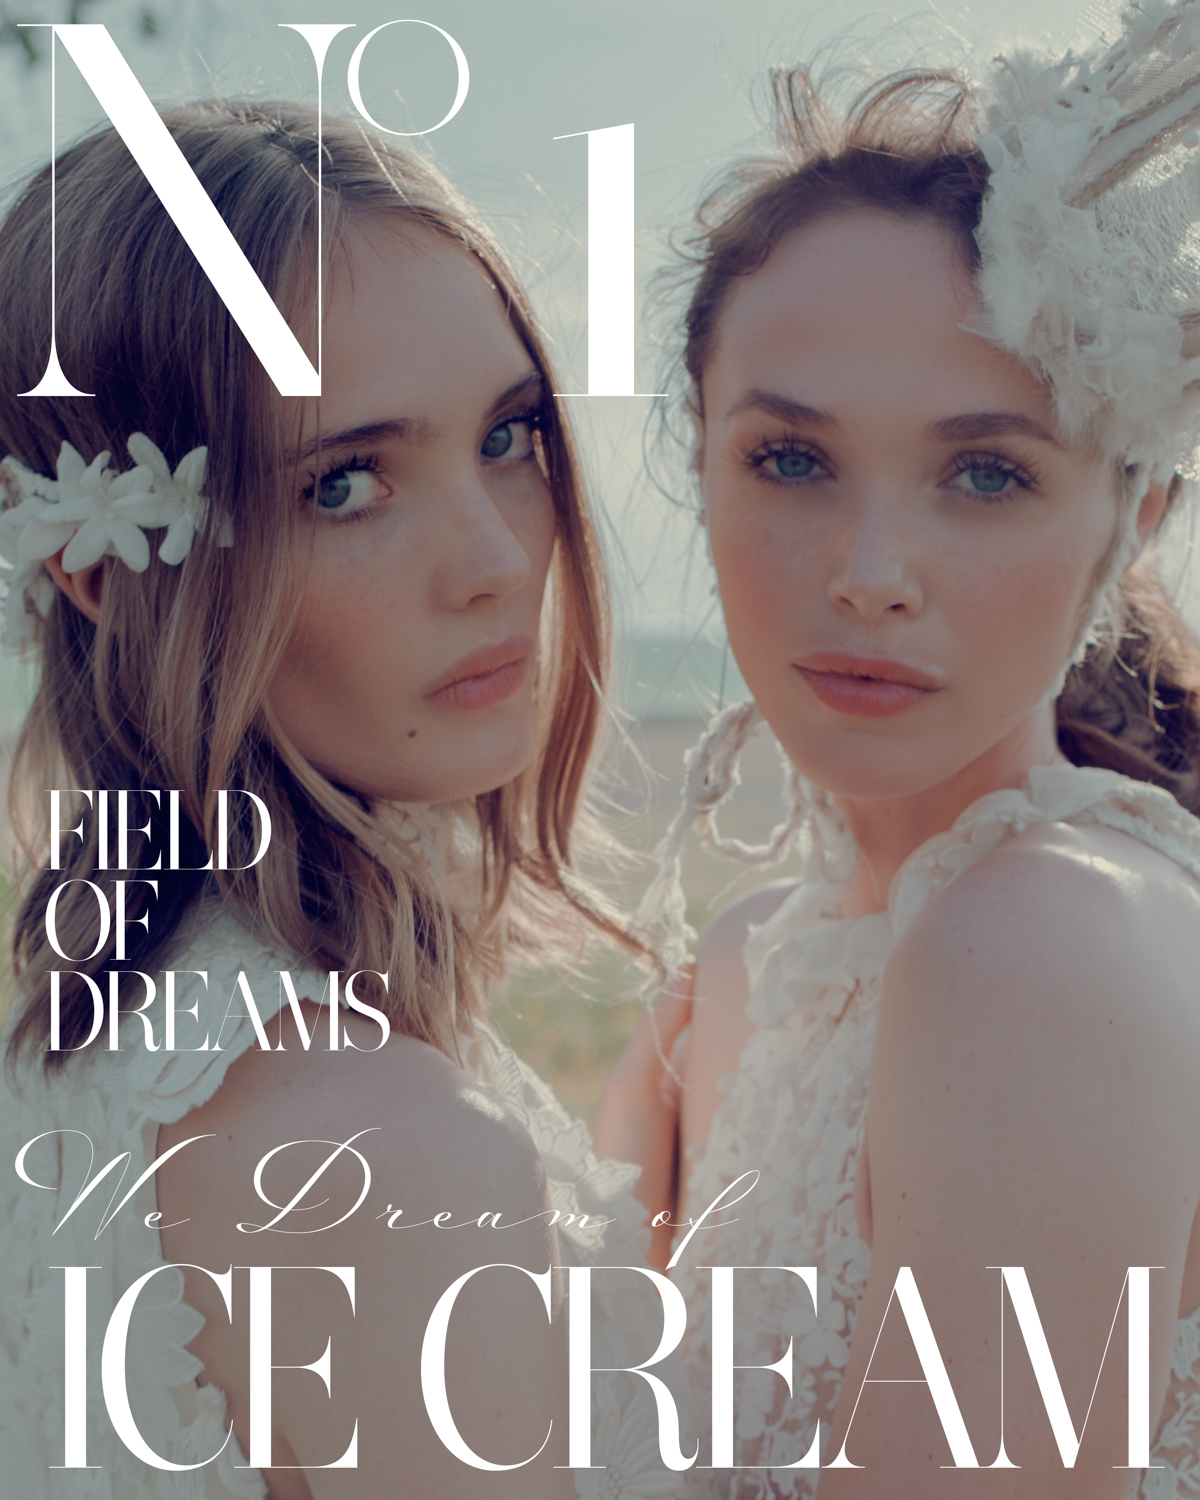 Field Of Dreams WE DREAM OF ICE CREAM COVER (1 of 2).JPG